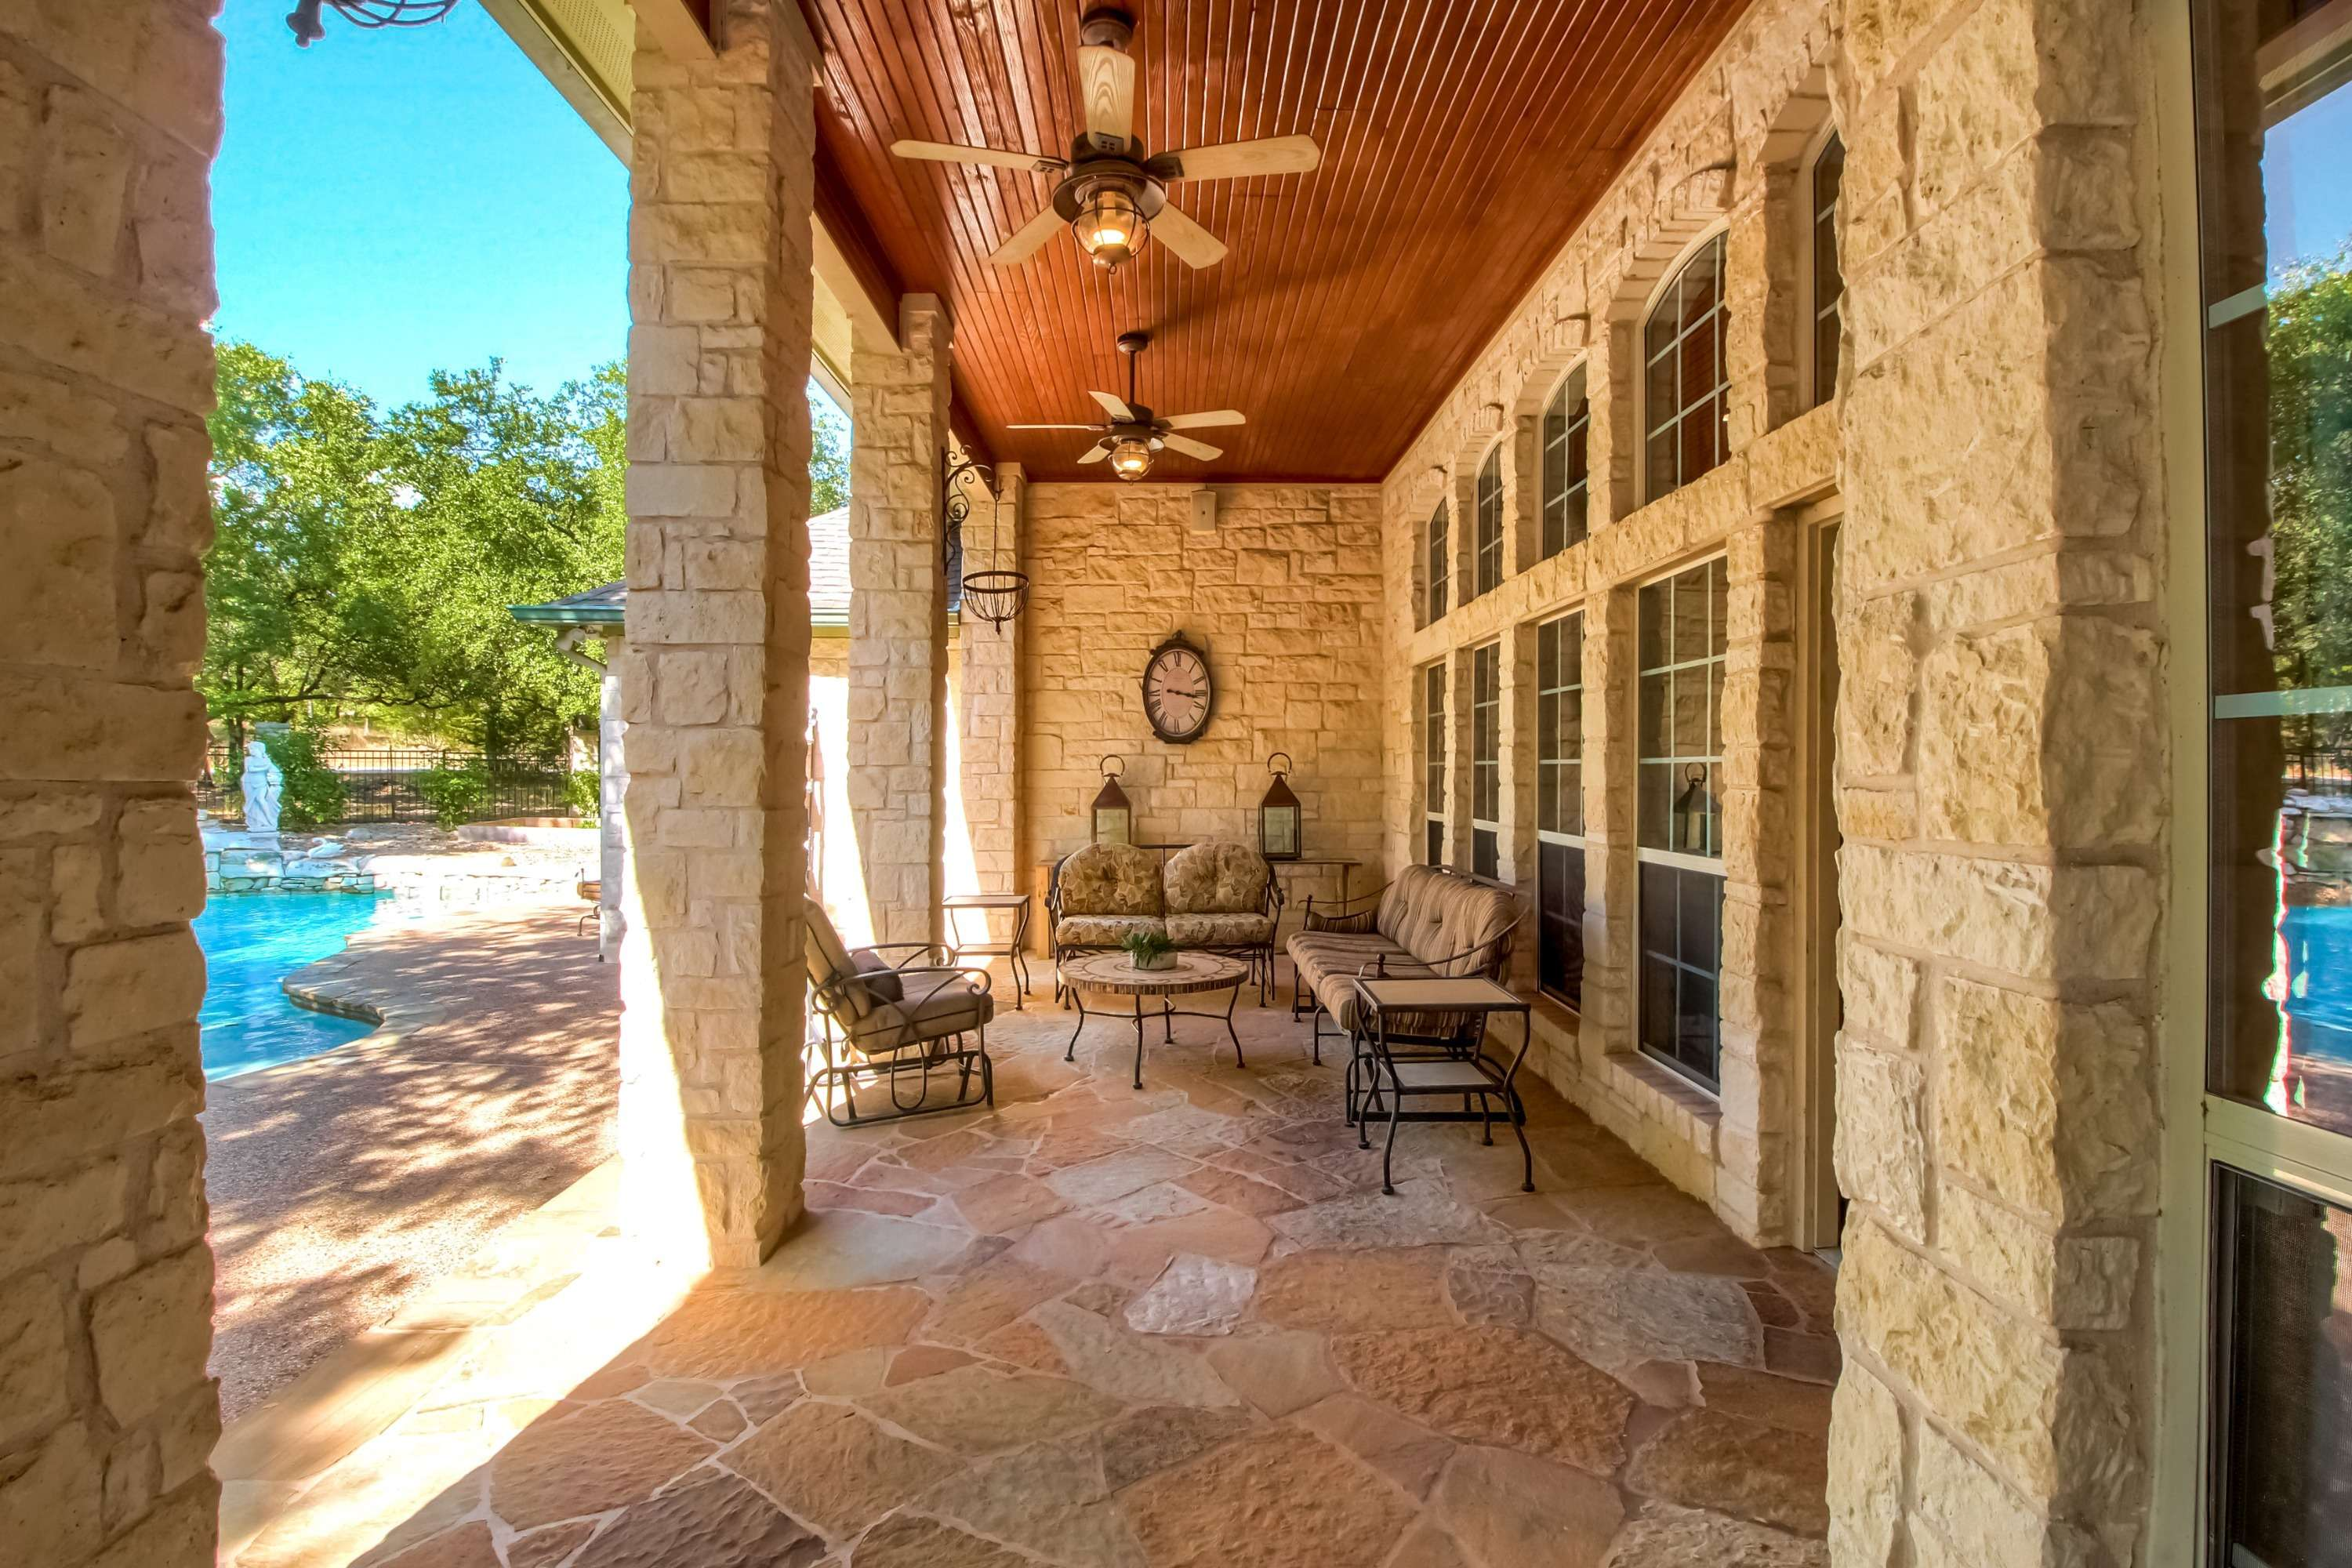 Georgetown TX acreage home for sale